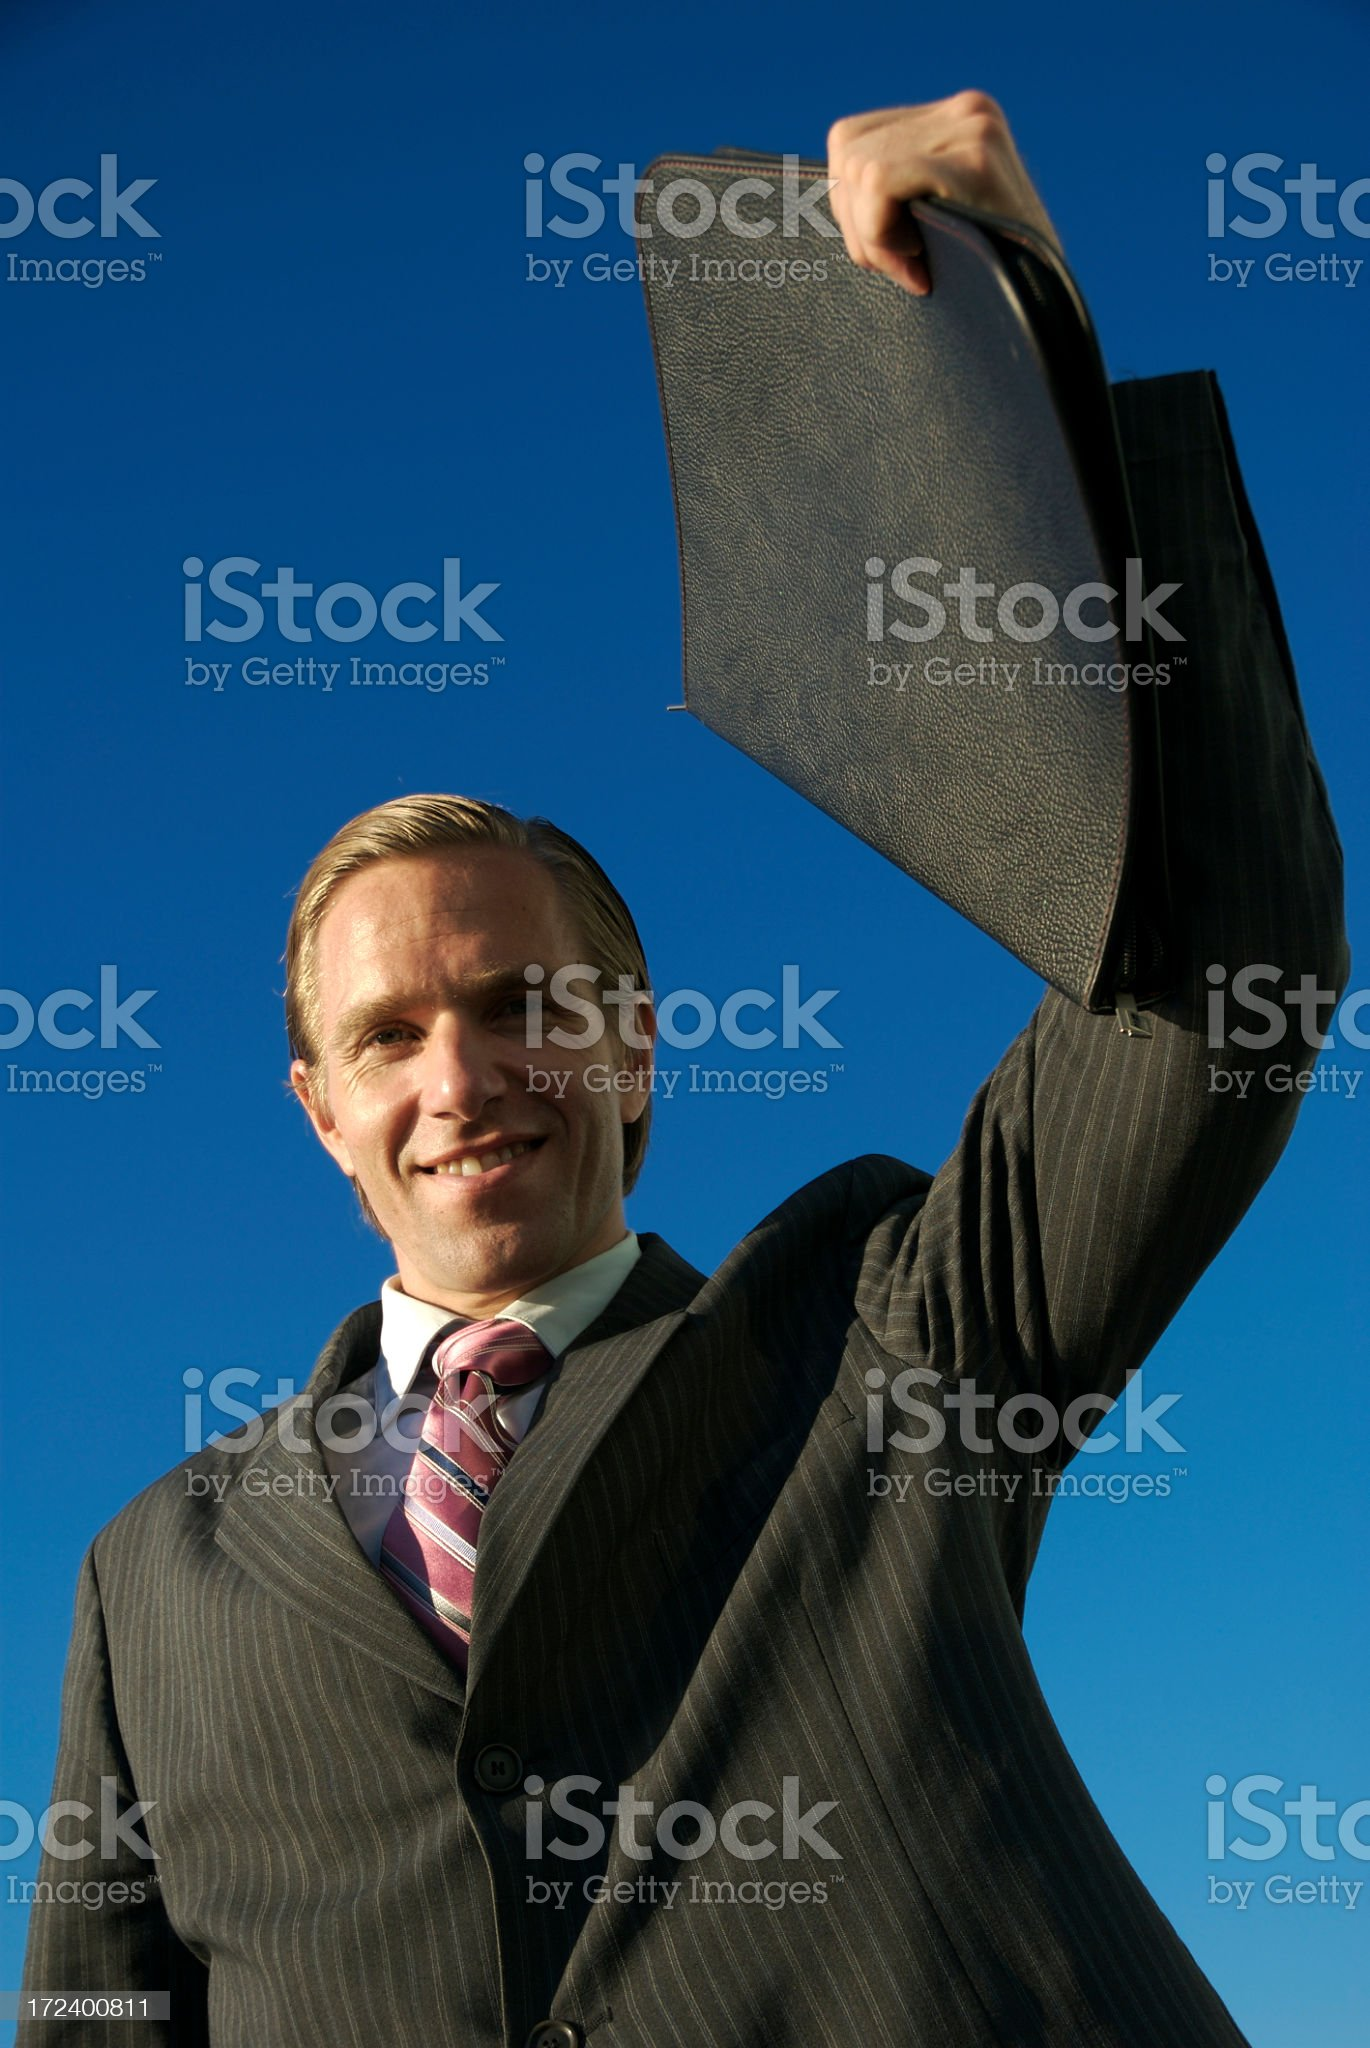 Businessman Celebrates with Portfolio Against Blue Sky royalty-free stock photo